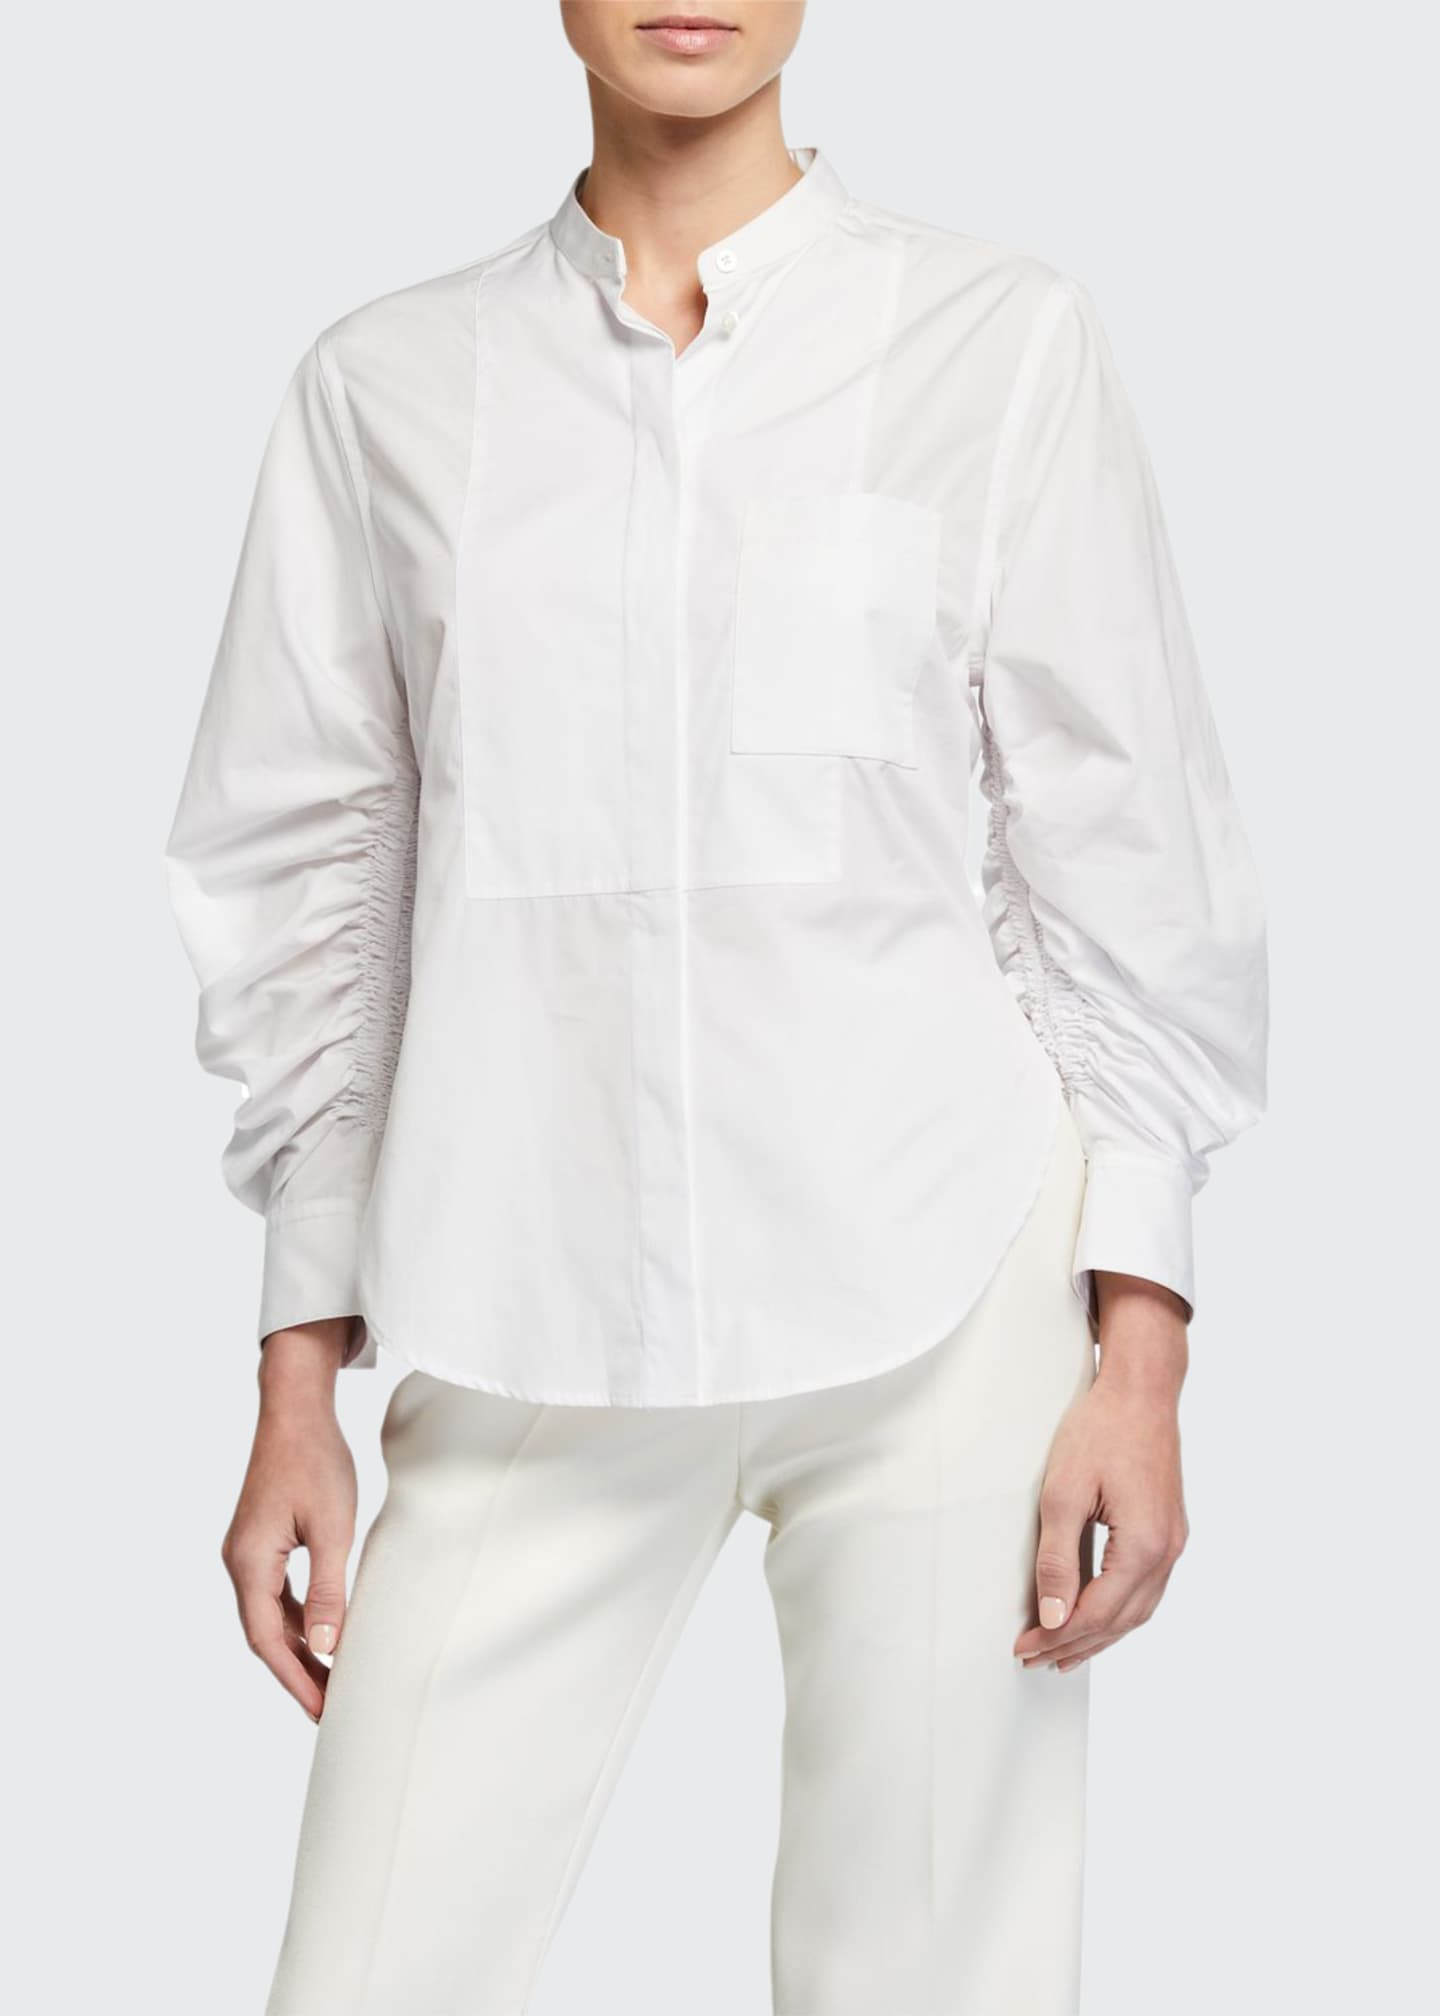 3.1 Phillip Lim Gathered-Sleeve Poplin Button-Down Top